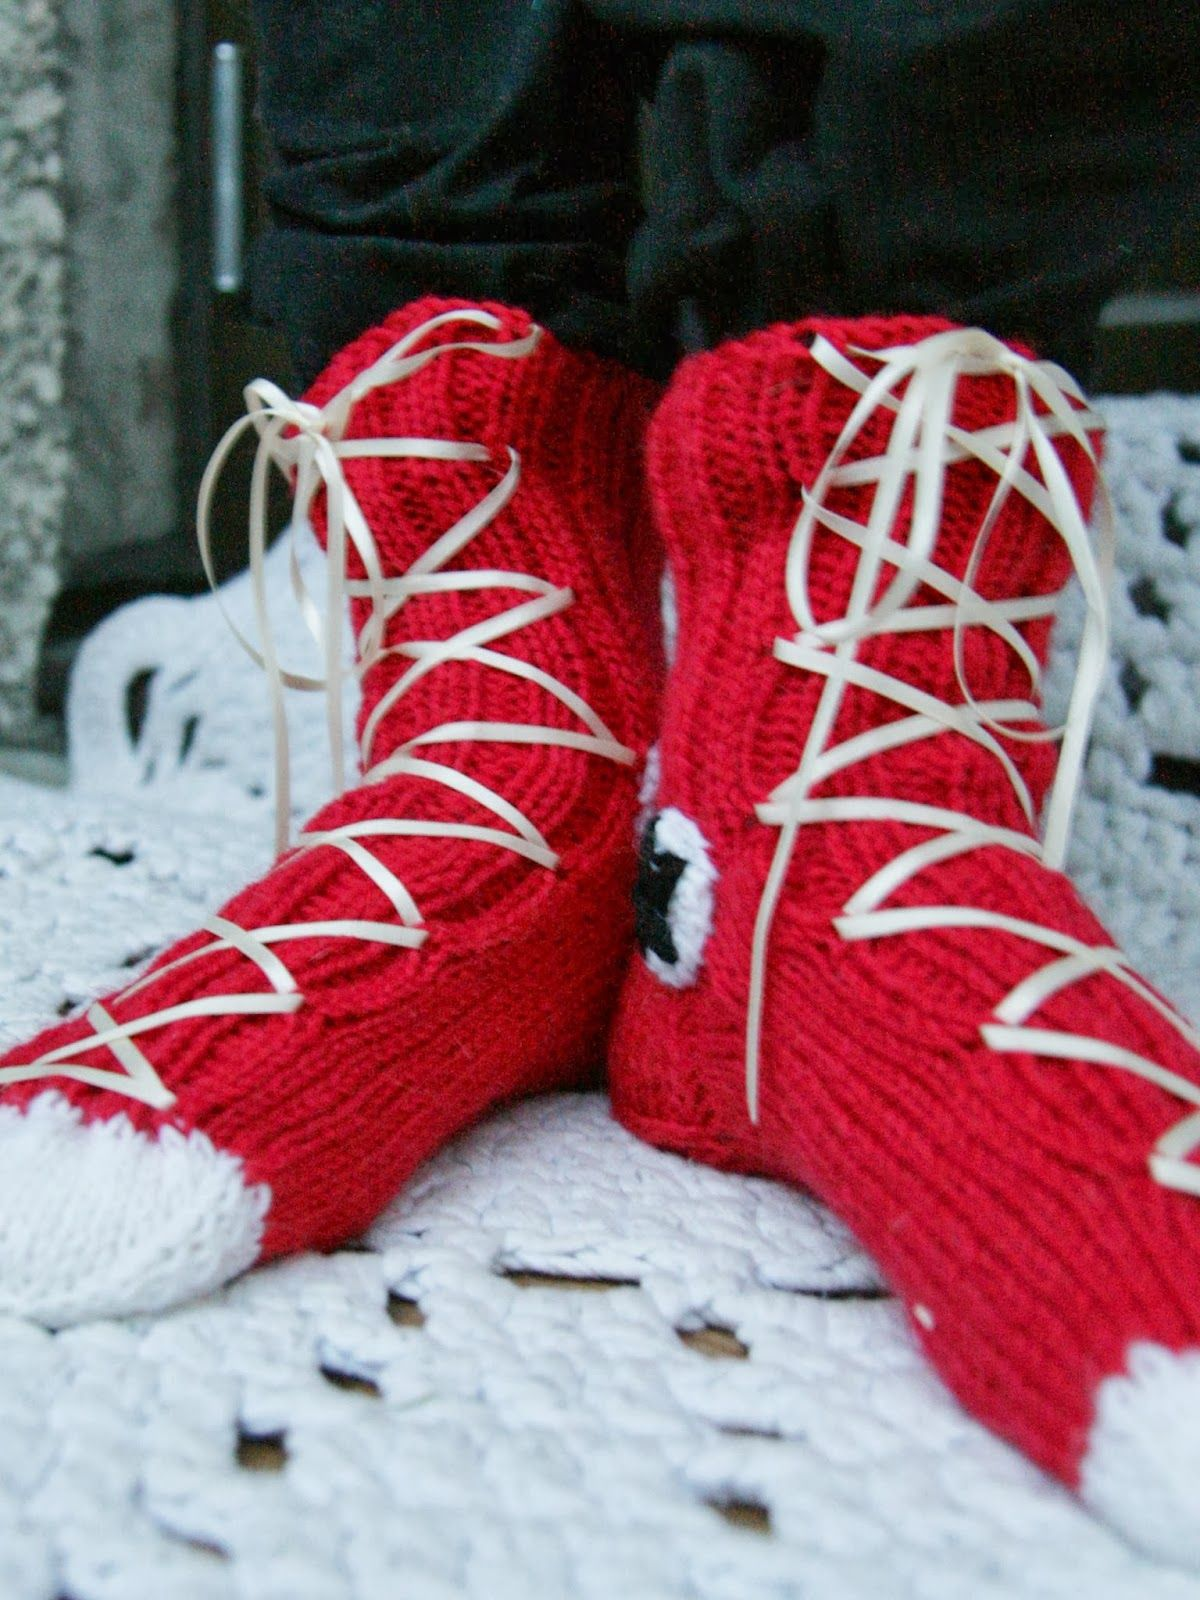 Knitted Converse socks